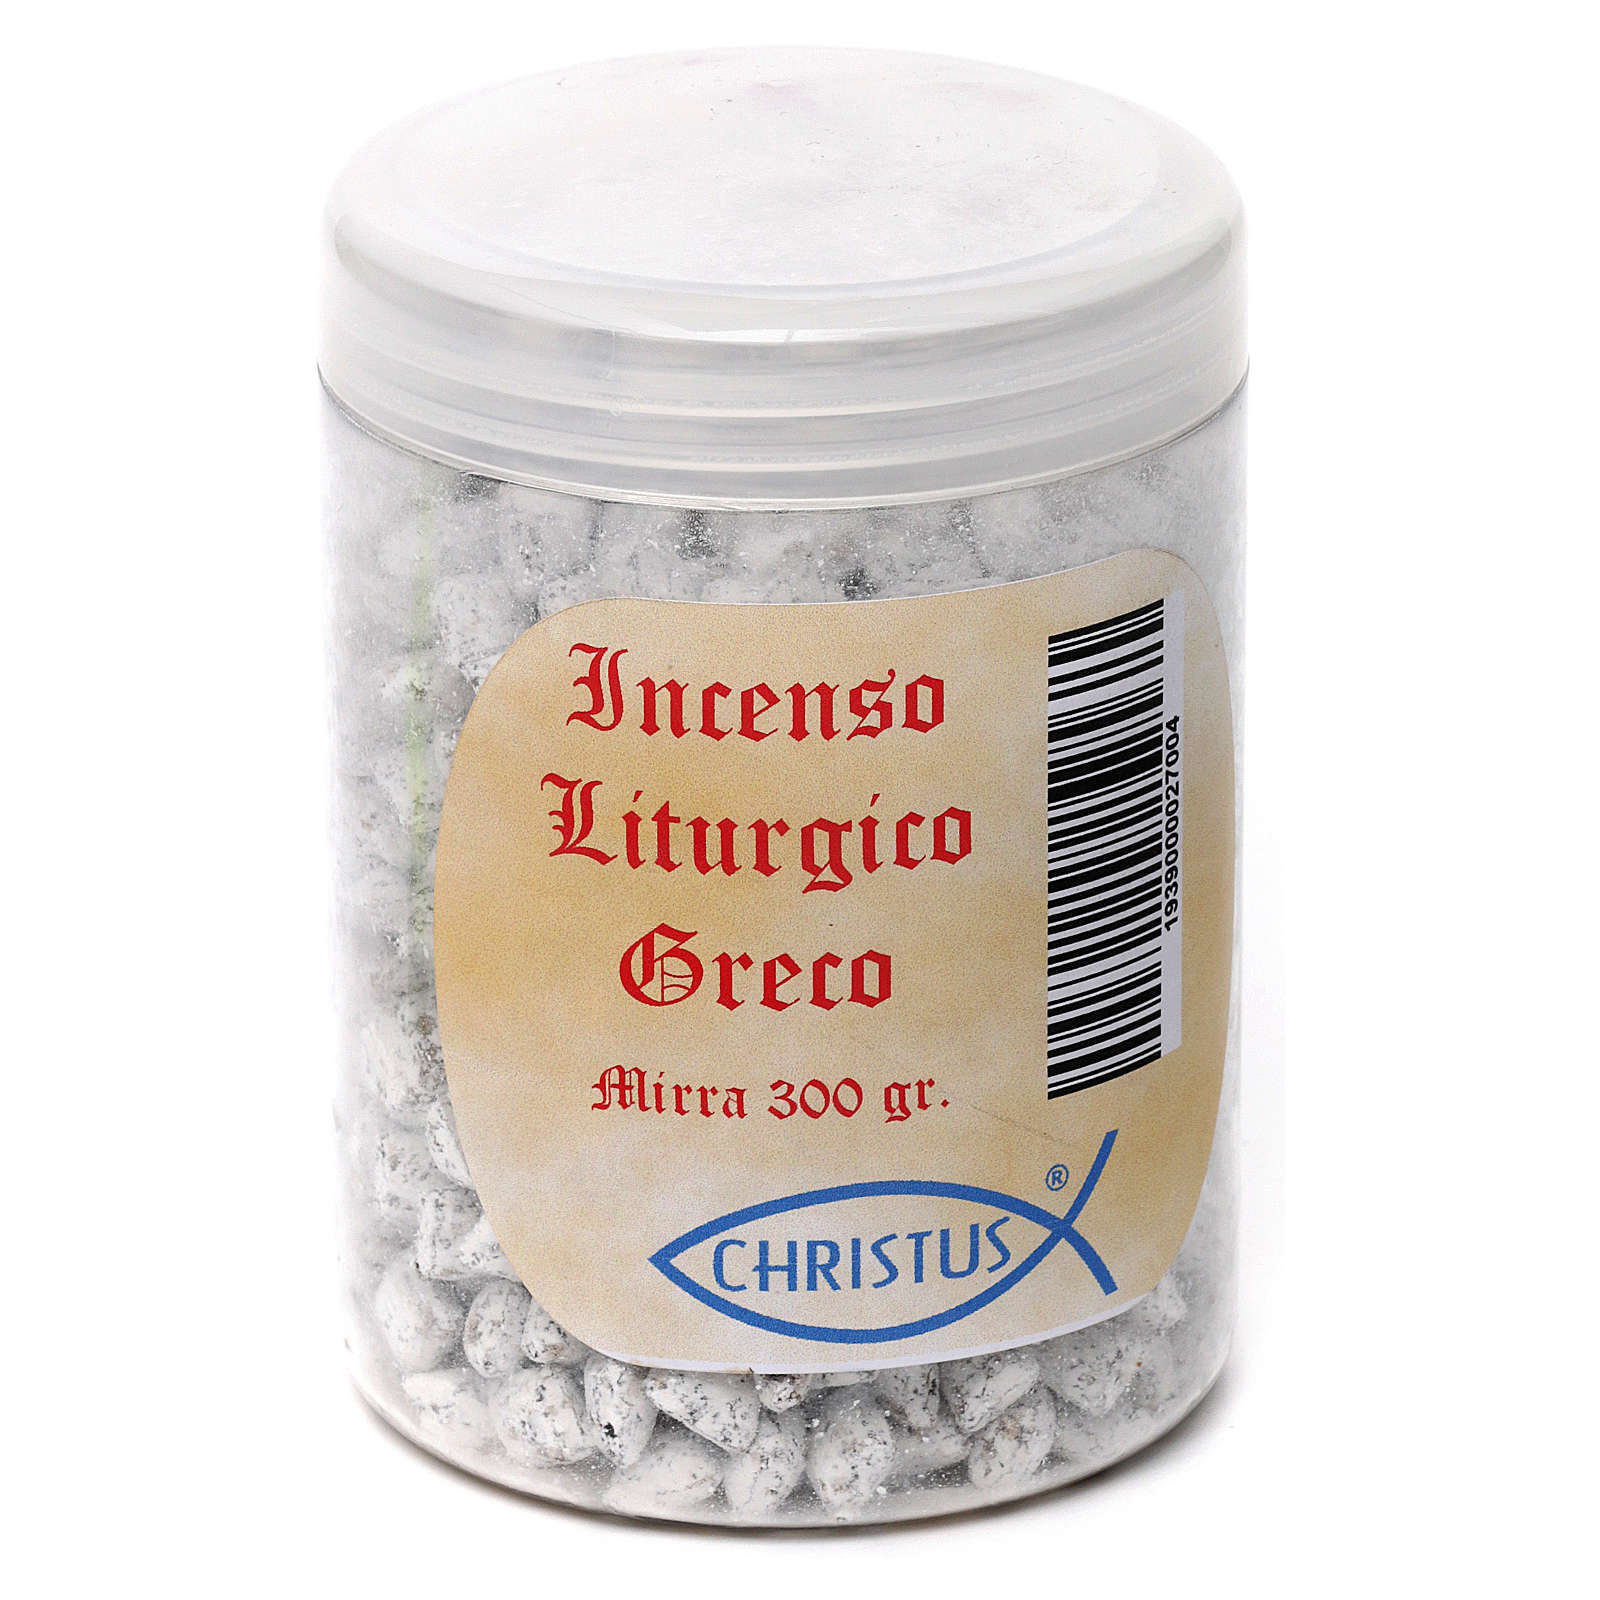 Incenso liturgico Greco 300 gr Mirra 3